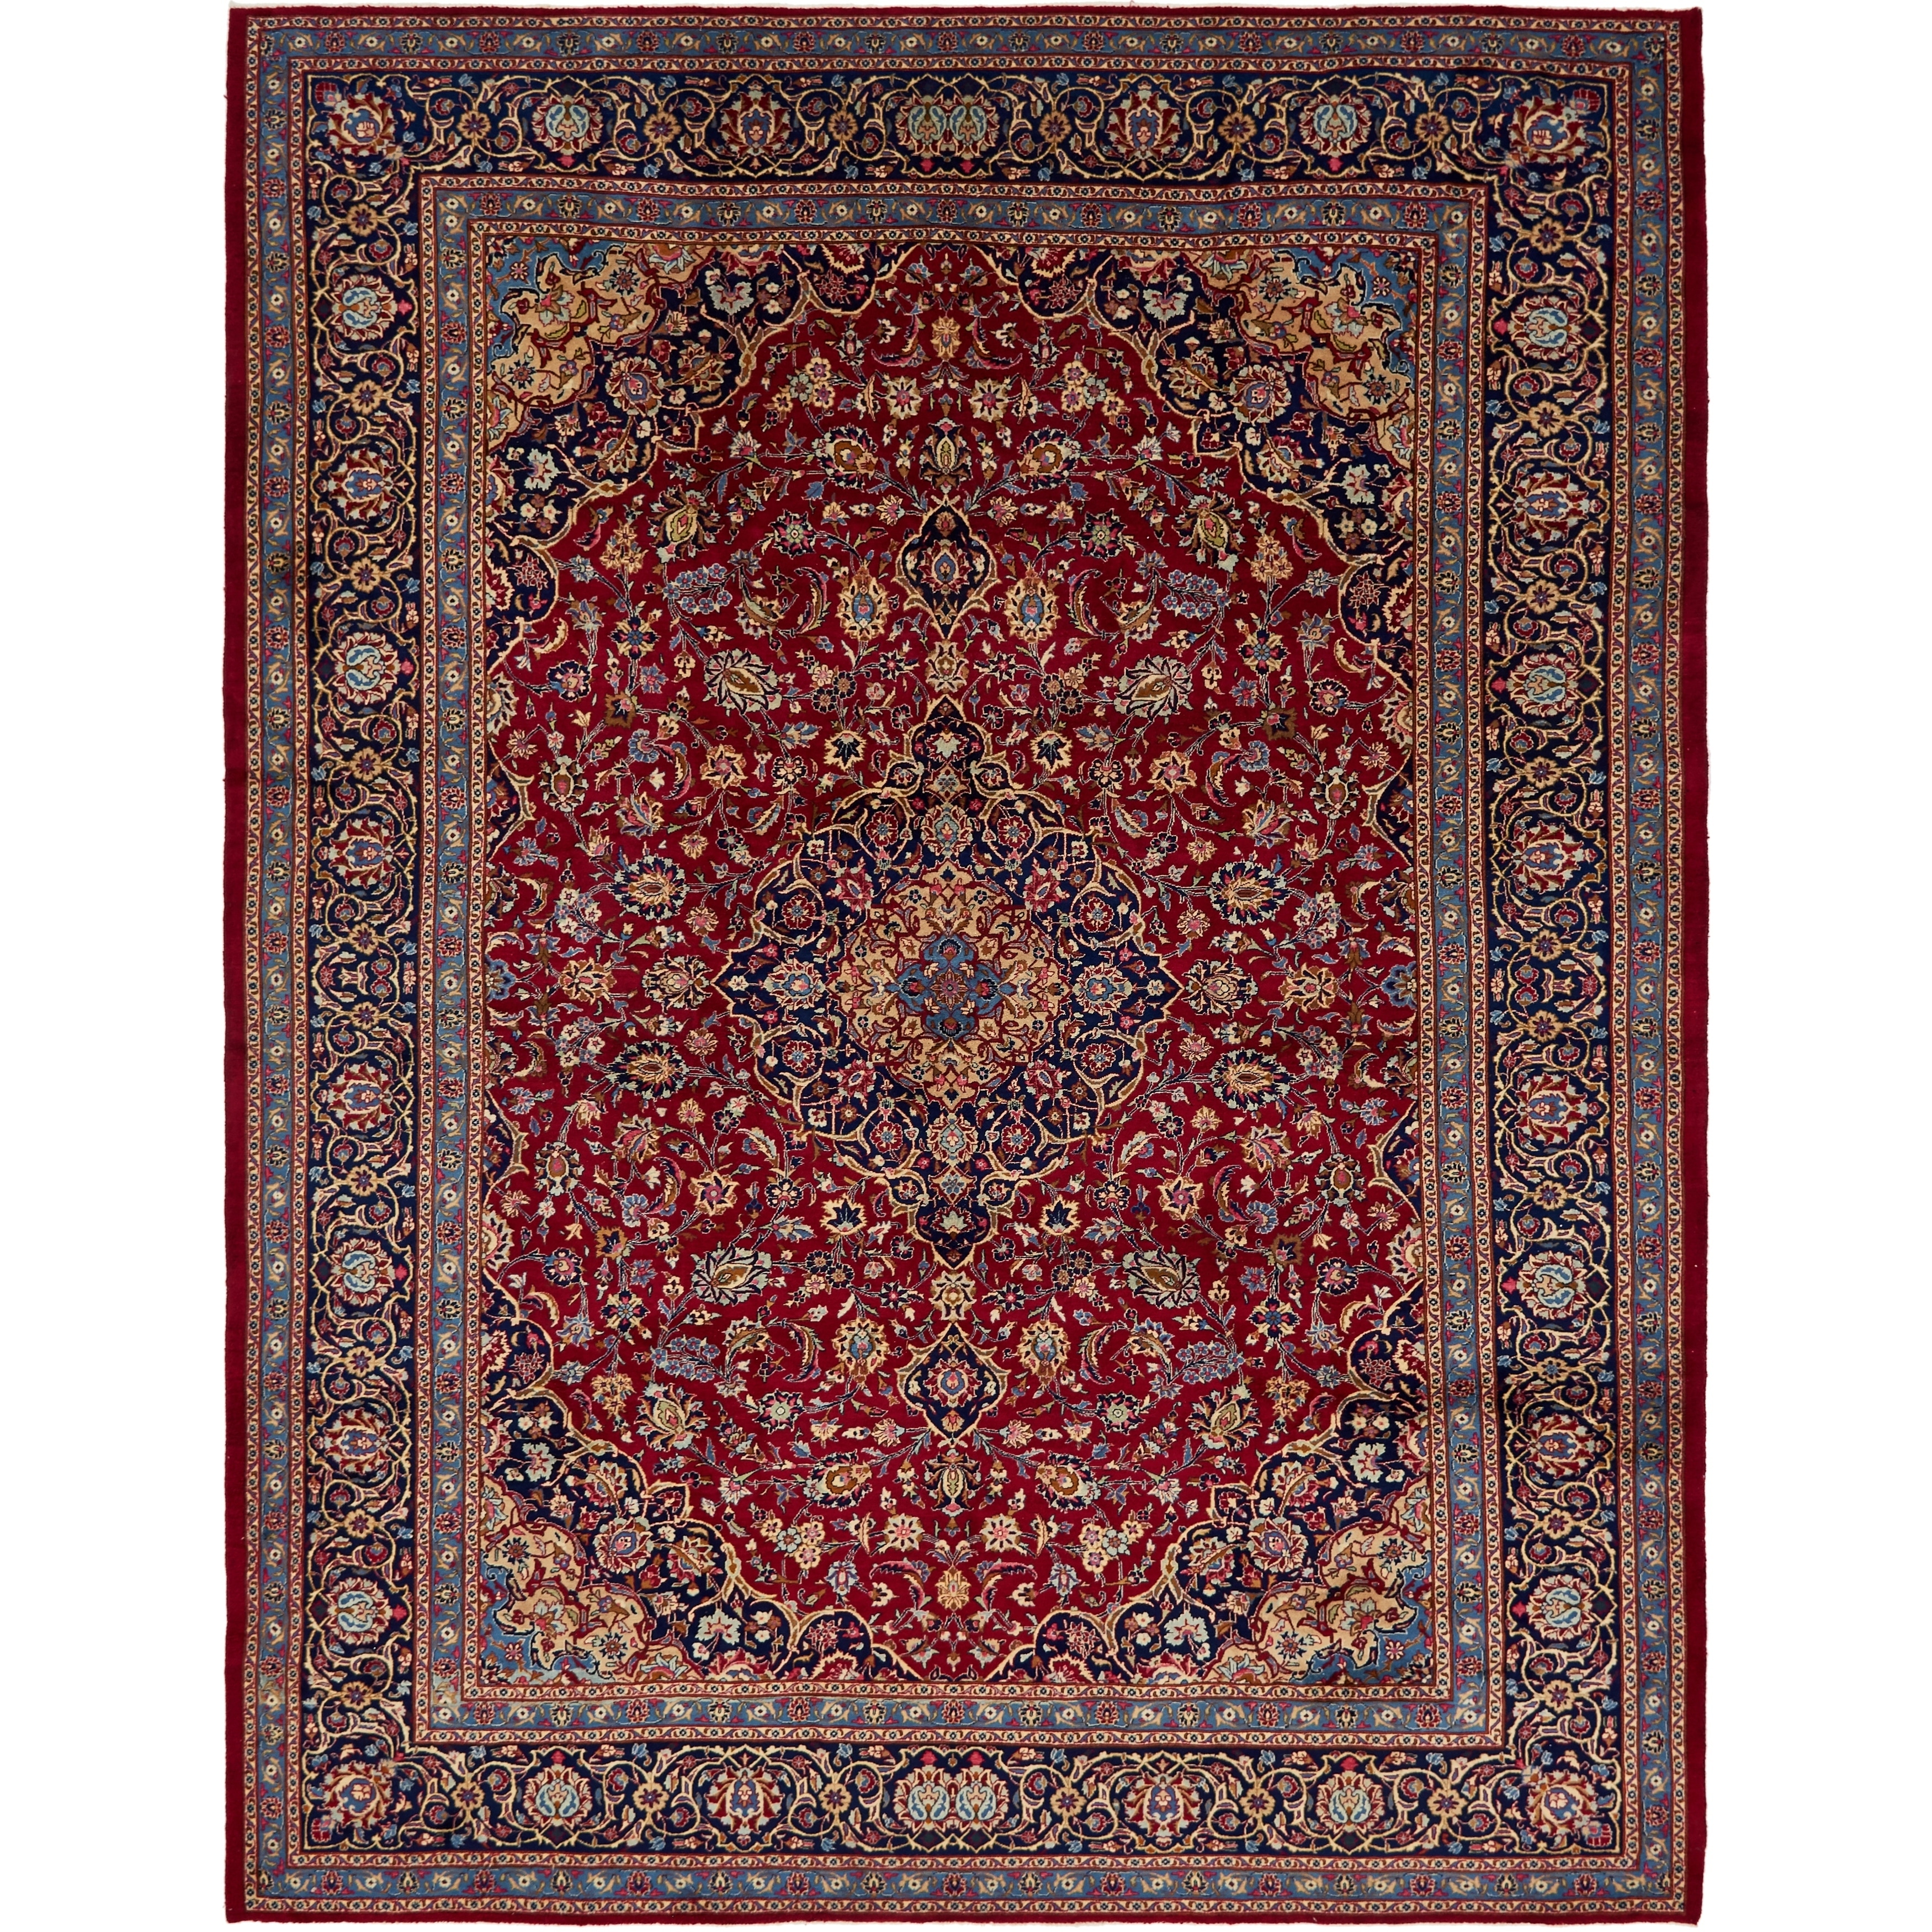 Hand Knotted Kashmar Semi Antique Wool Area Rug - 10 x 12 10 (Red - 10 x 12 10)